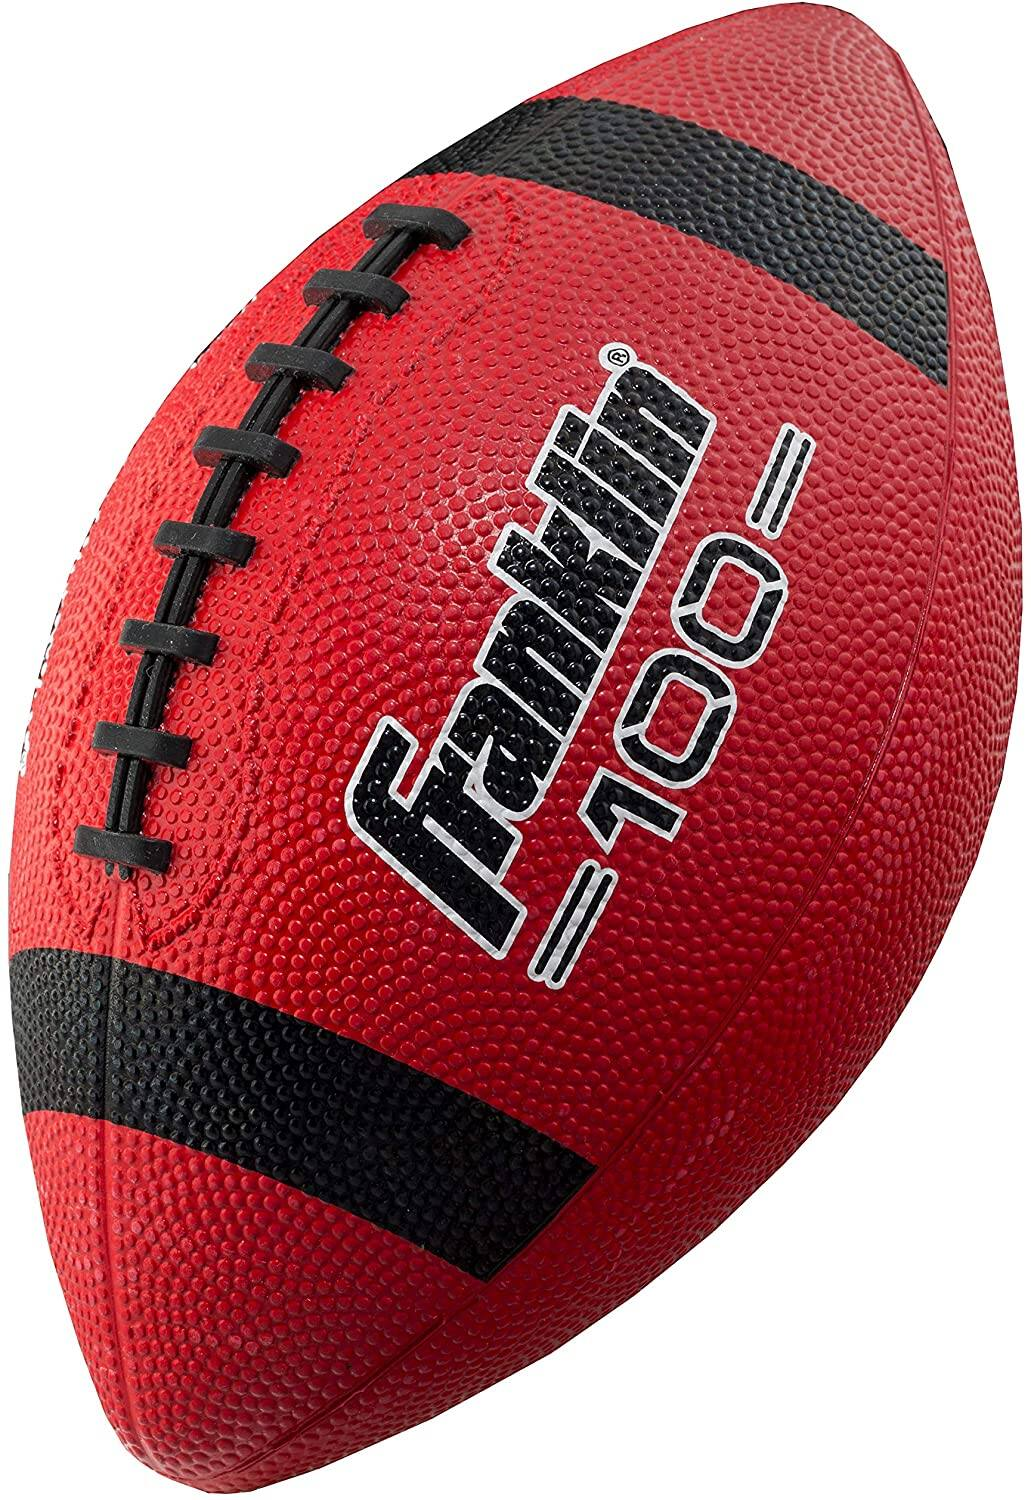 "Franklin Sports Grip-Rite 100 10"" L x 6"" W Rubber Junior Football (Red)"